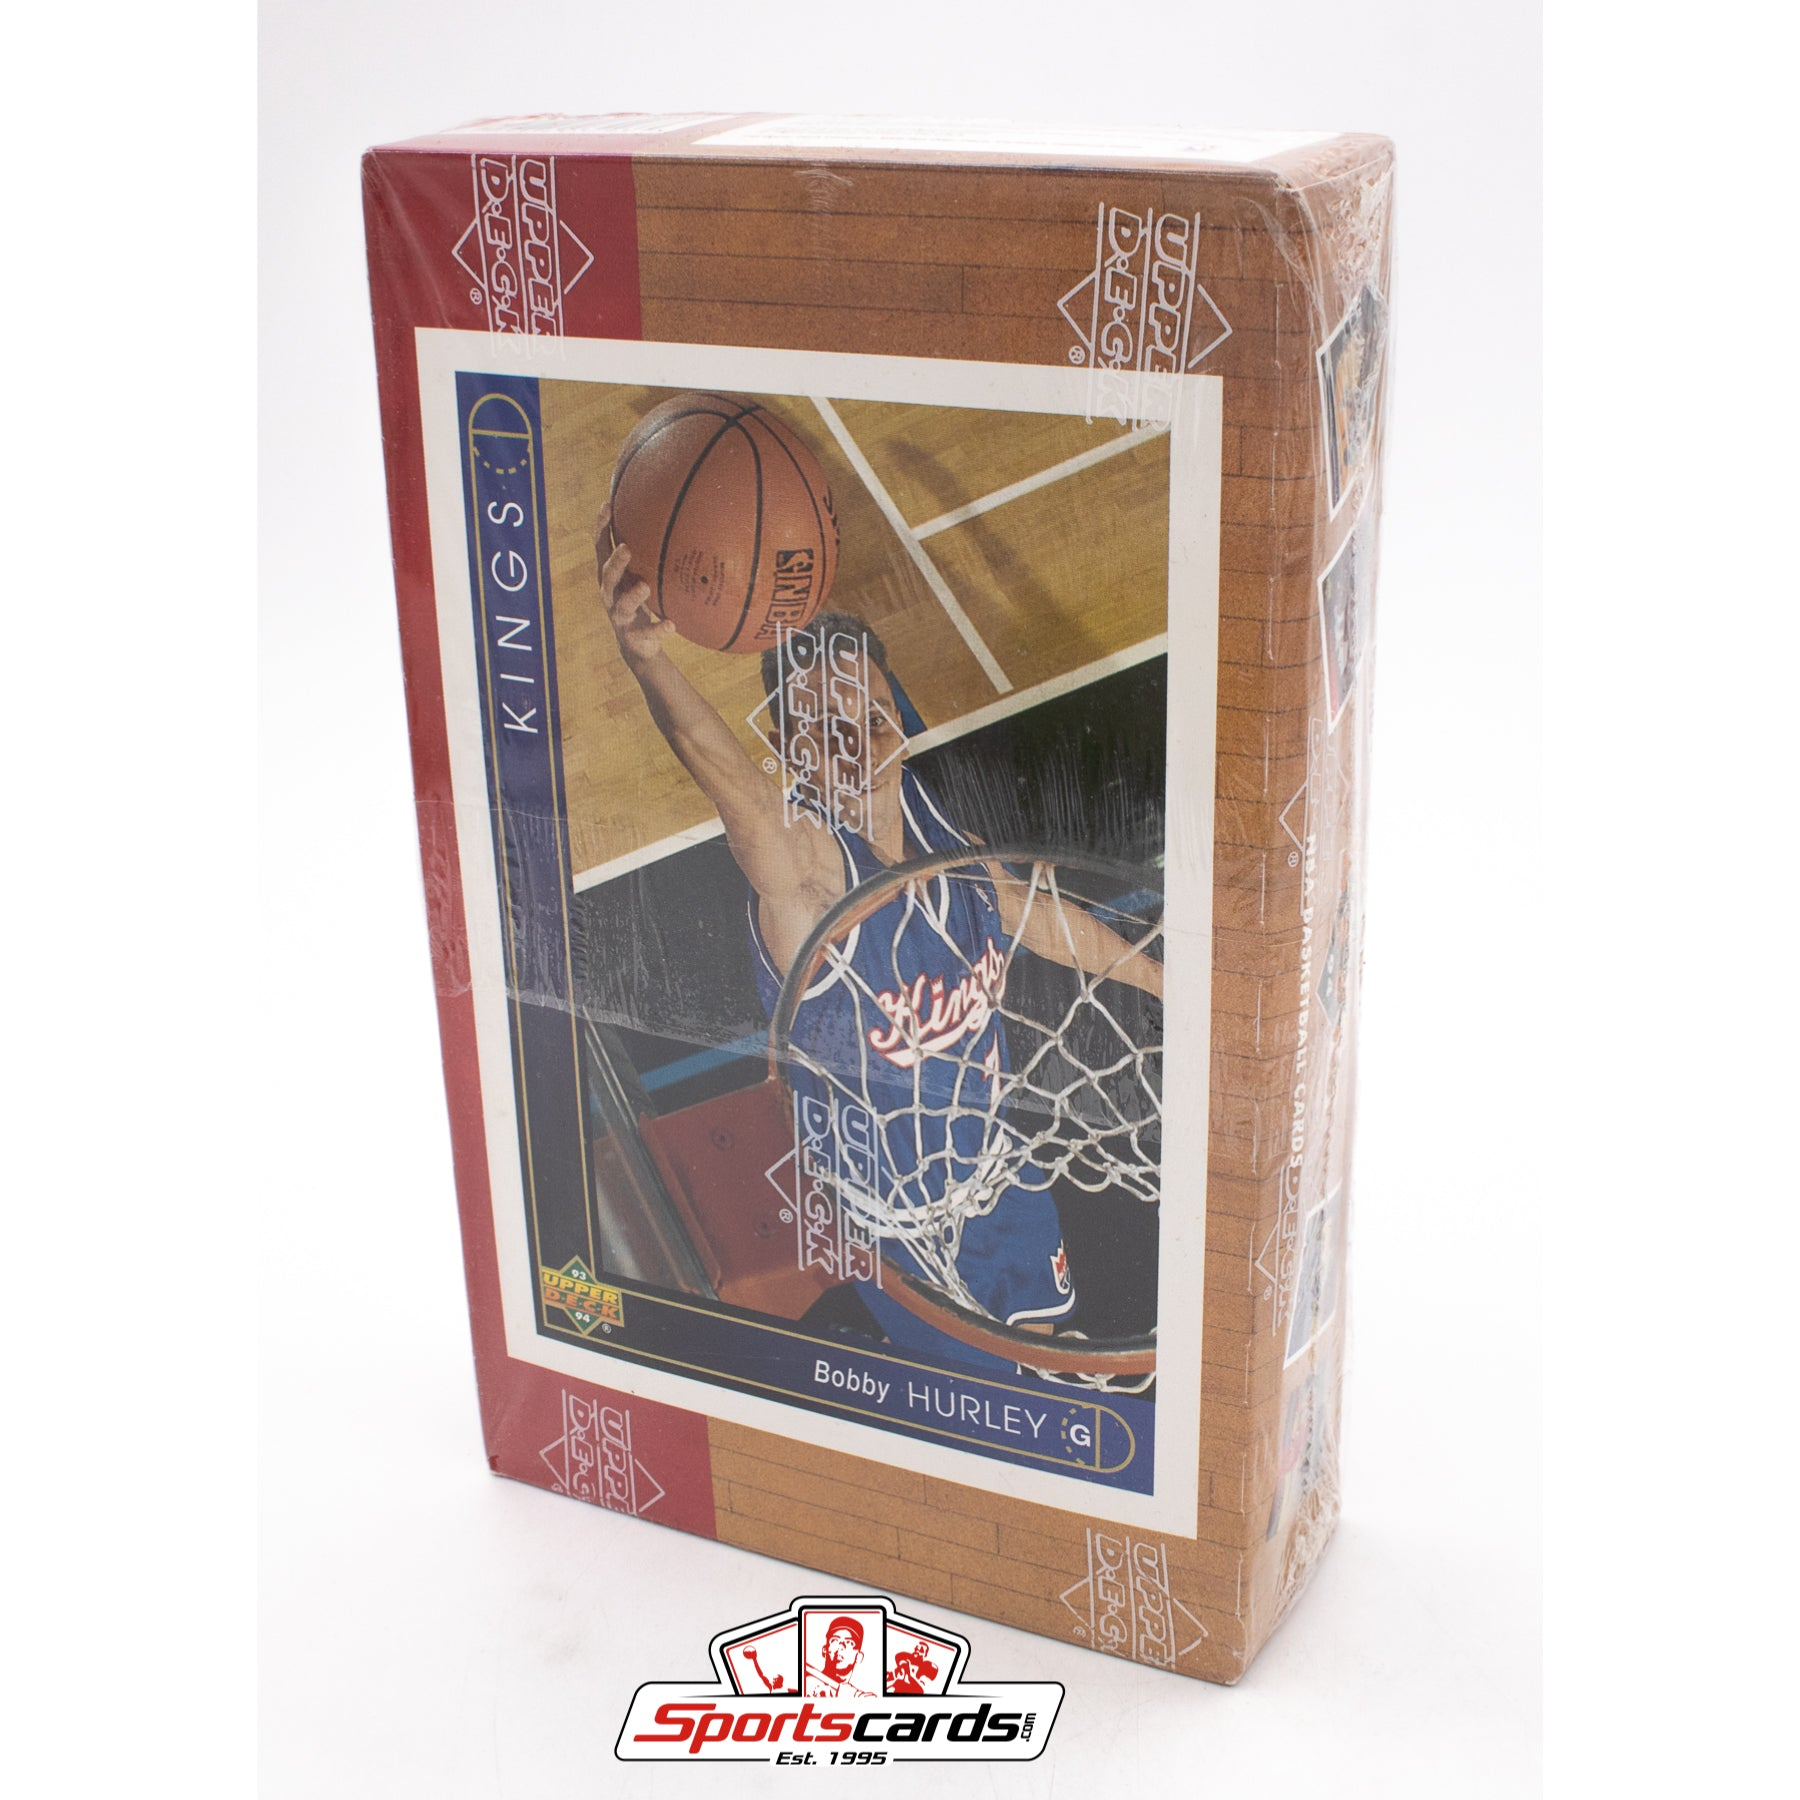 1993-94 Upper Deck NBA Basketball Series 2 Hobby Factory Sealed Box